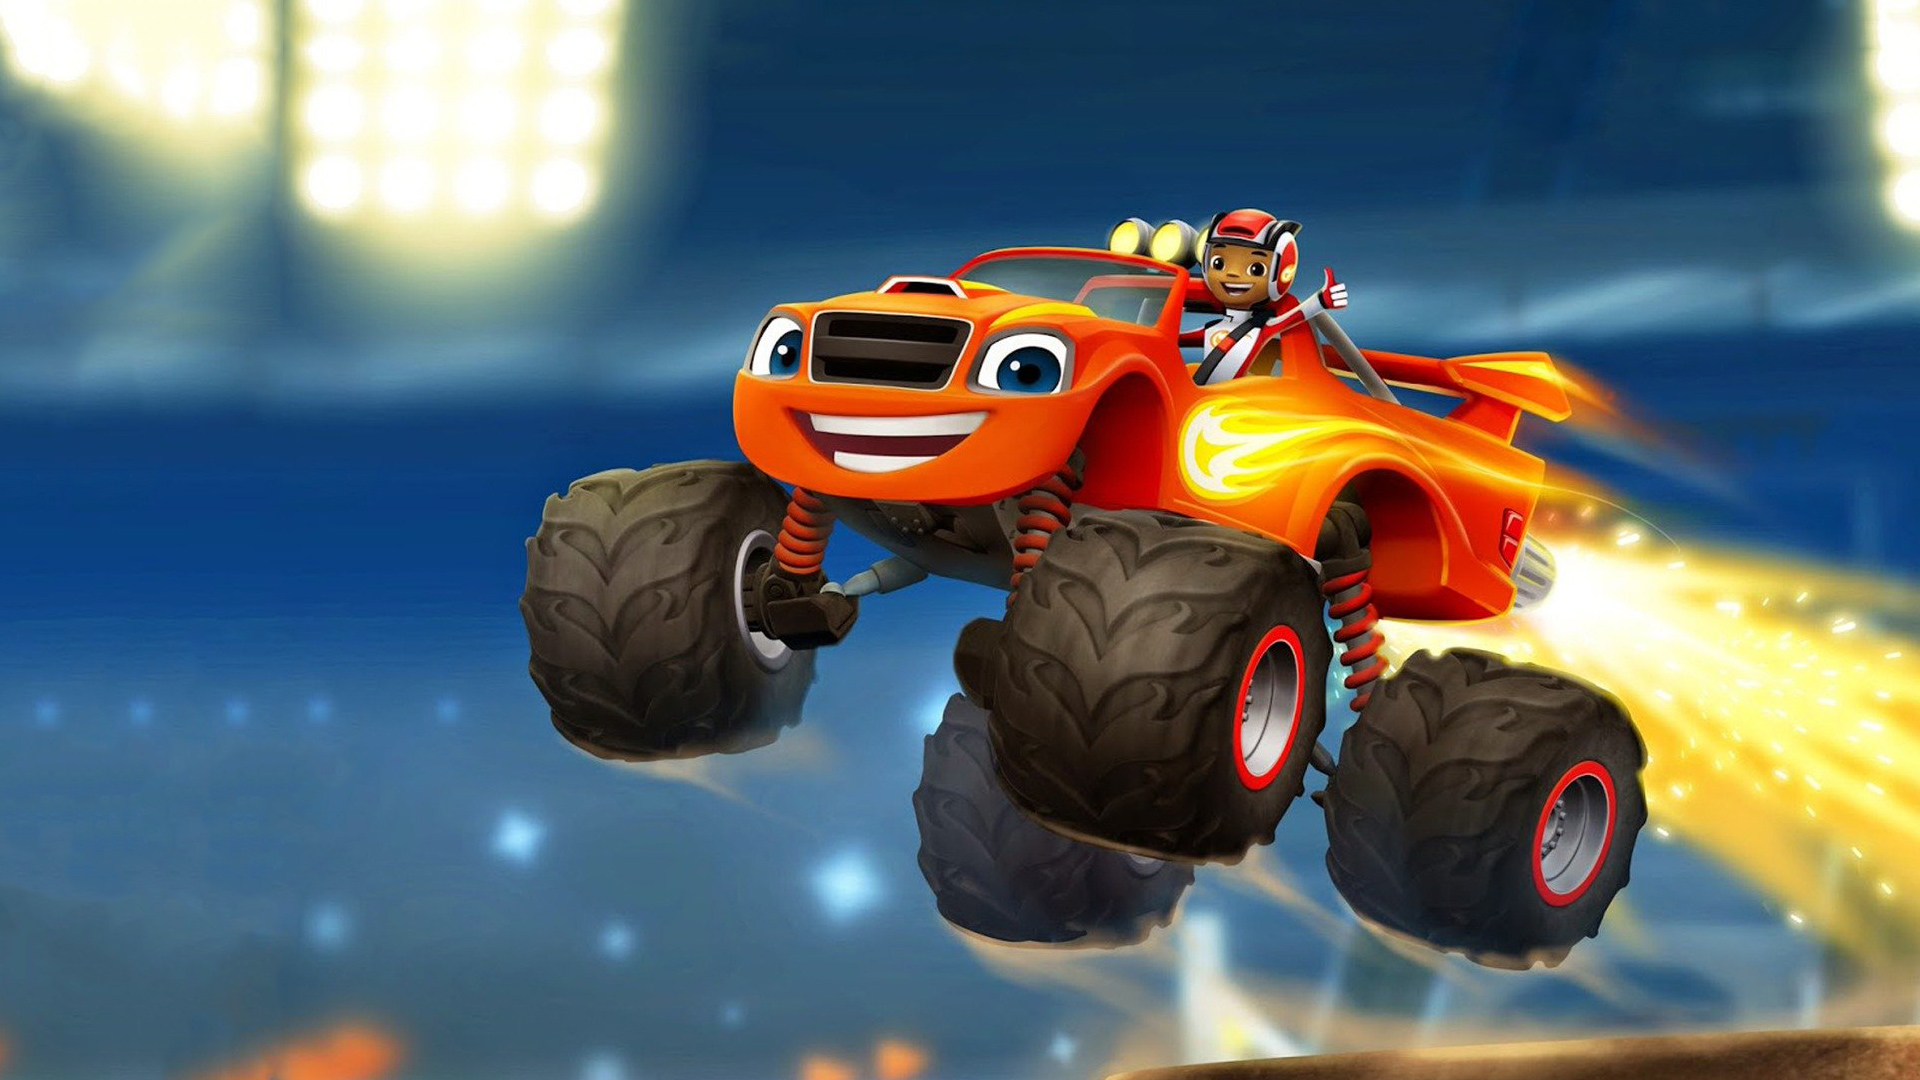 Blaze And The Monster Machines Best Wallpapers Supertab Themes